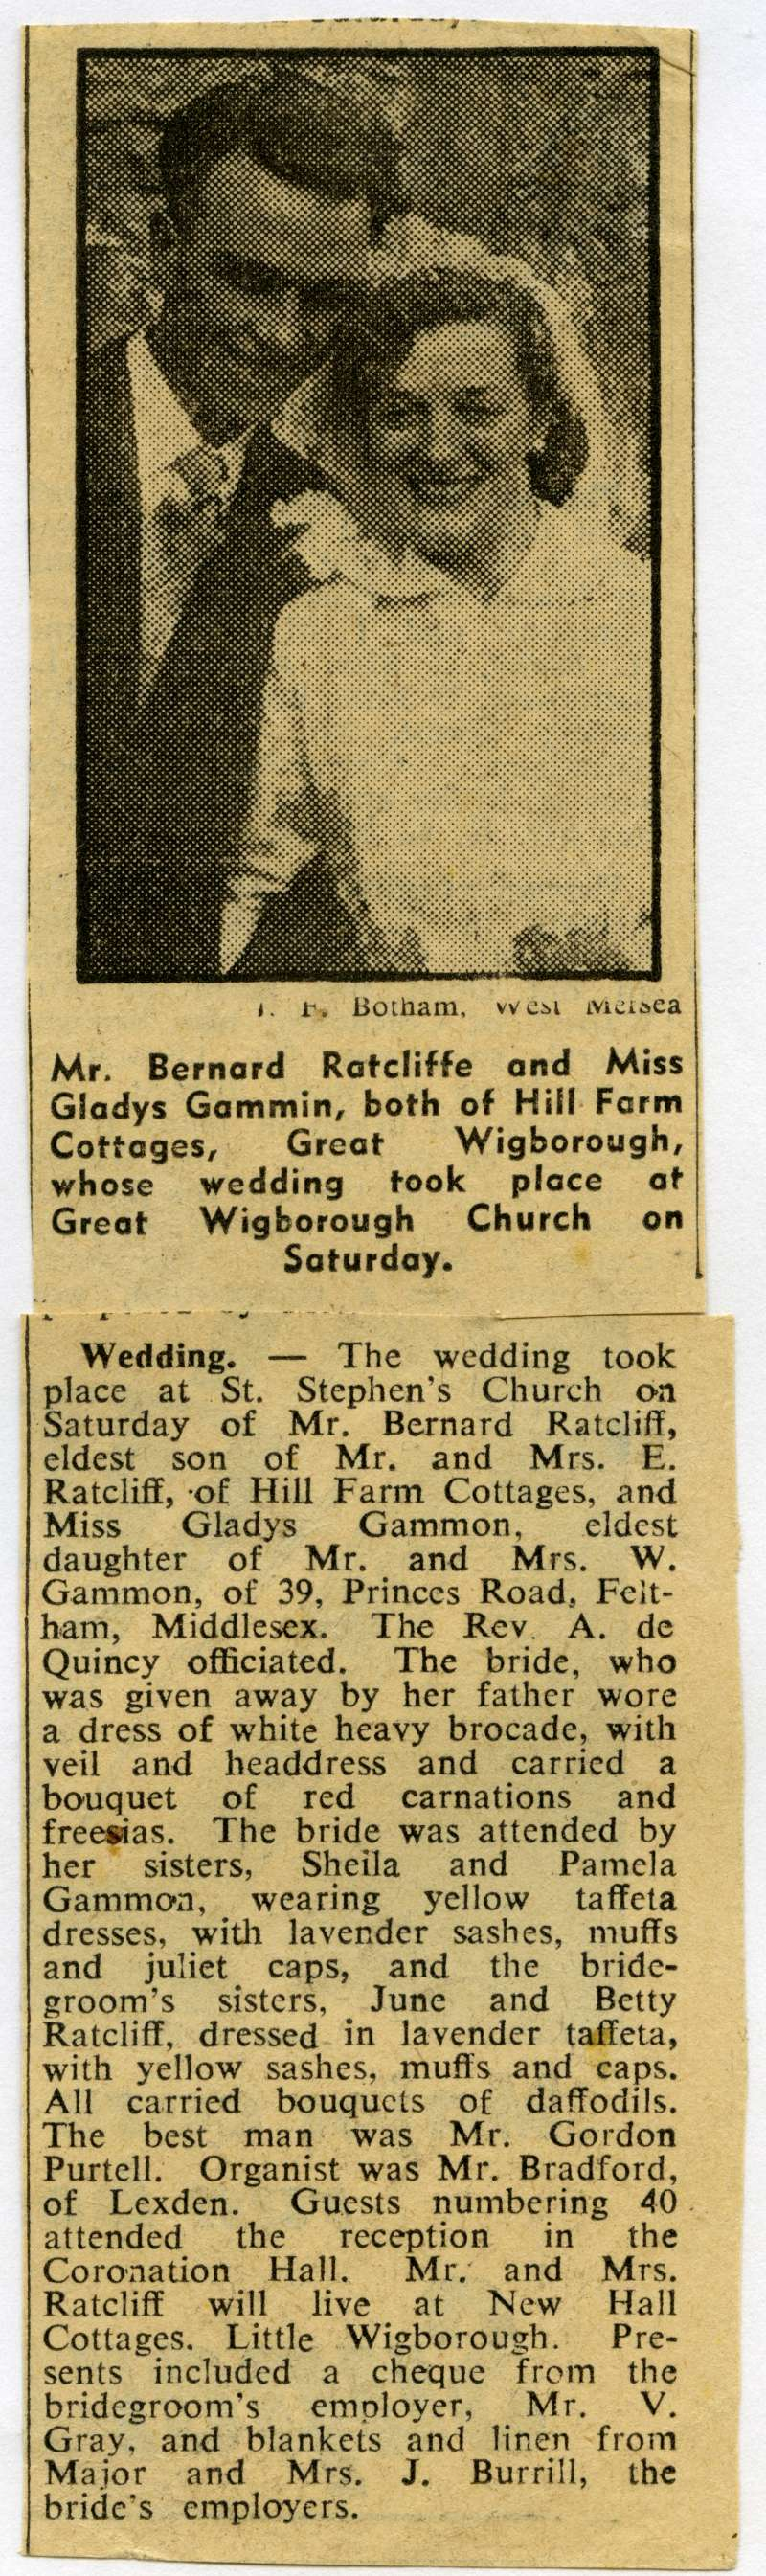 Mr Bernard Ratcliffe and Miss Gladys Gammin [ Gammon ], both of Hill Farm Cottages, Great Wigborough Church, whose wedding took place on Saturday.